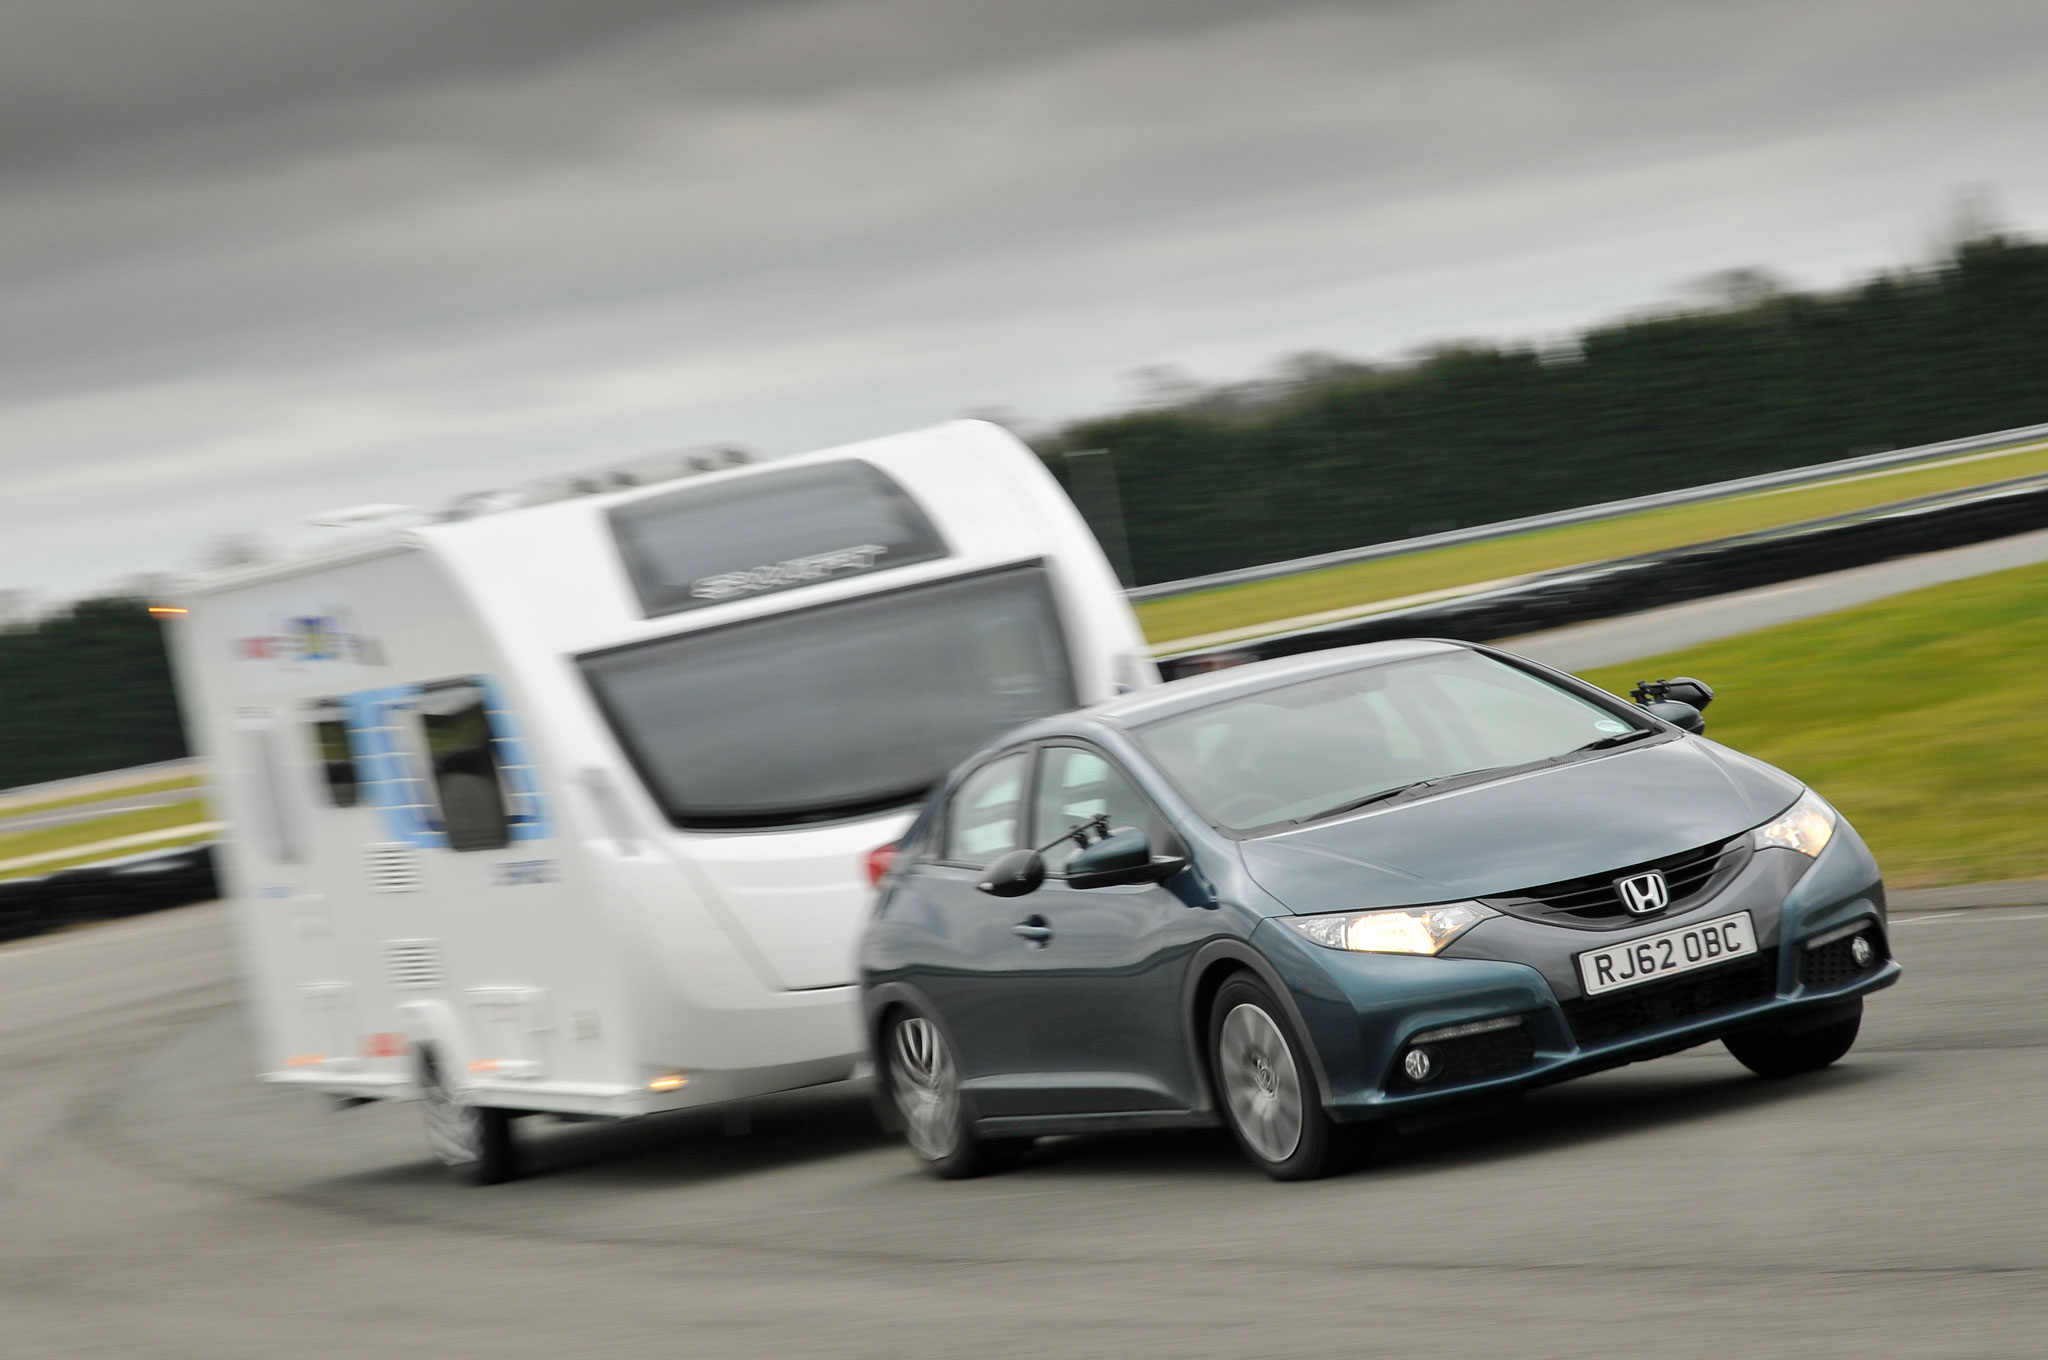 Honda Civic Kia Rio Win Tow Car Awards In UK